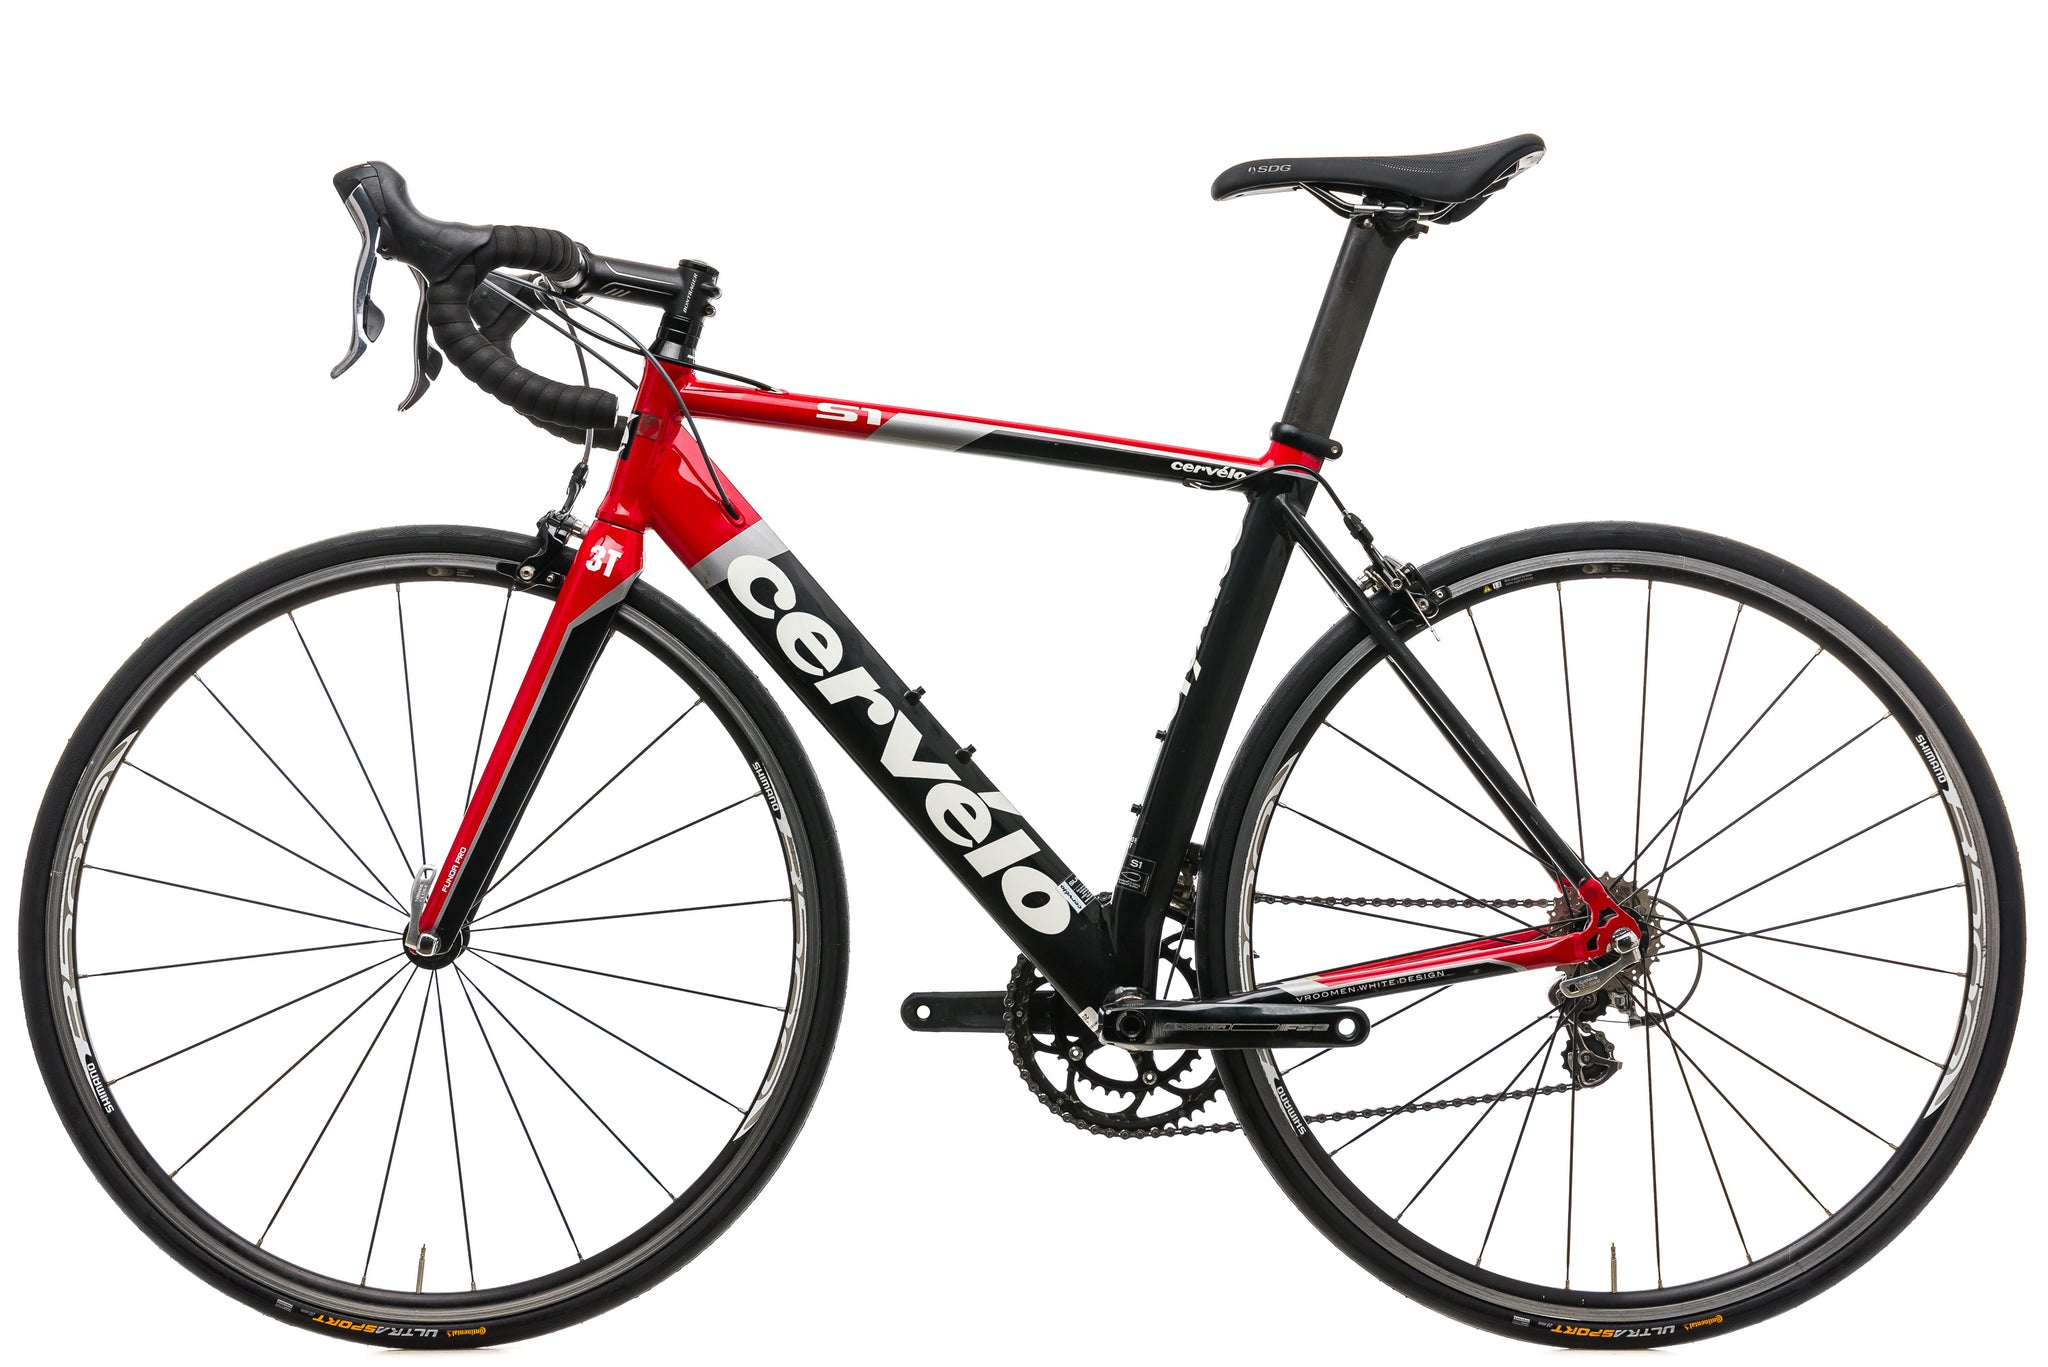 Cervelo S1 Road Bike - 2010, 54cm non-drive side